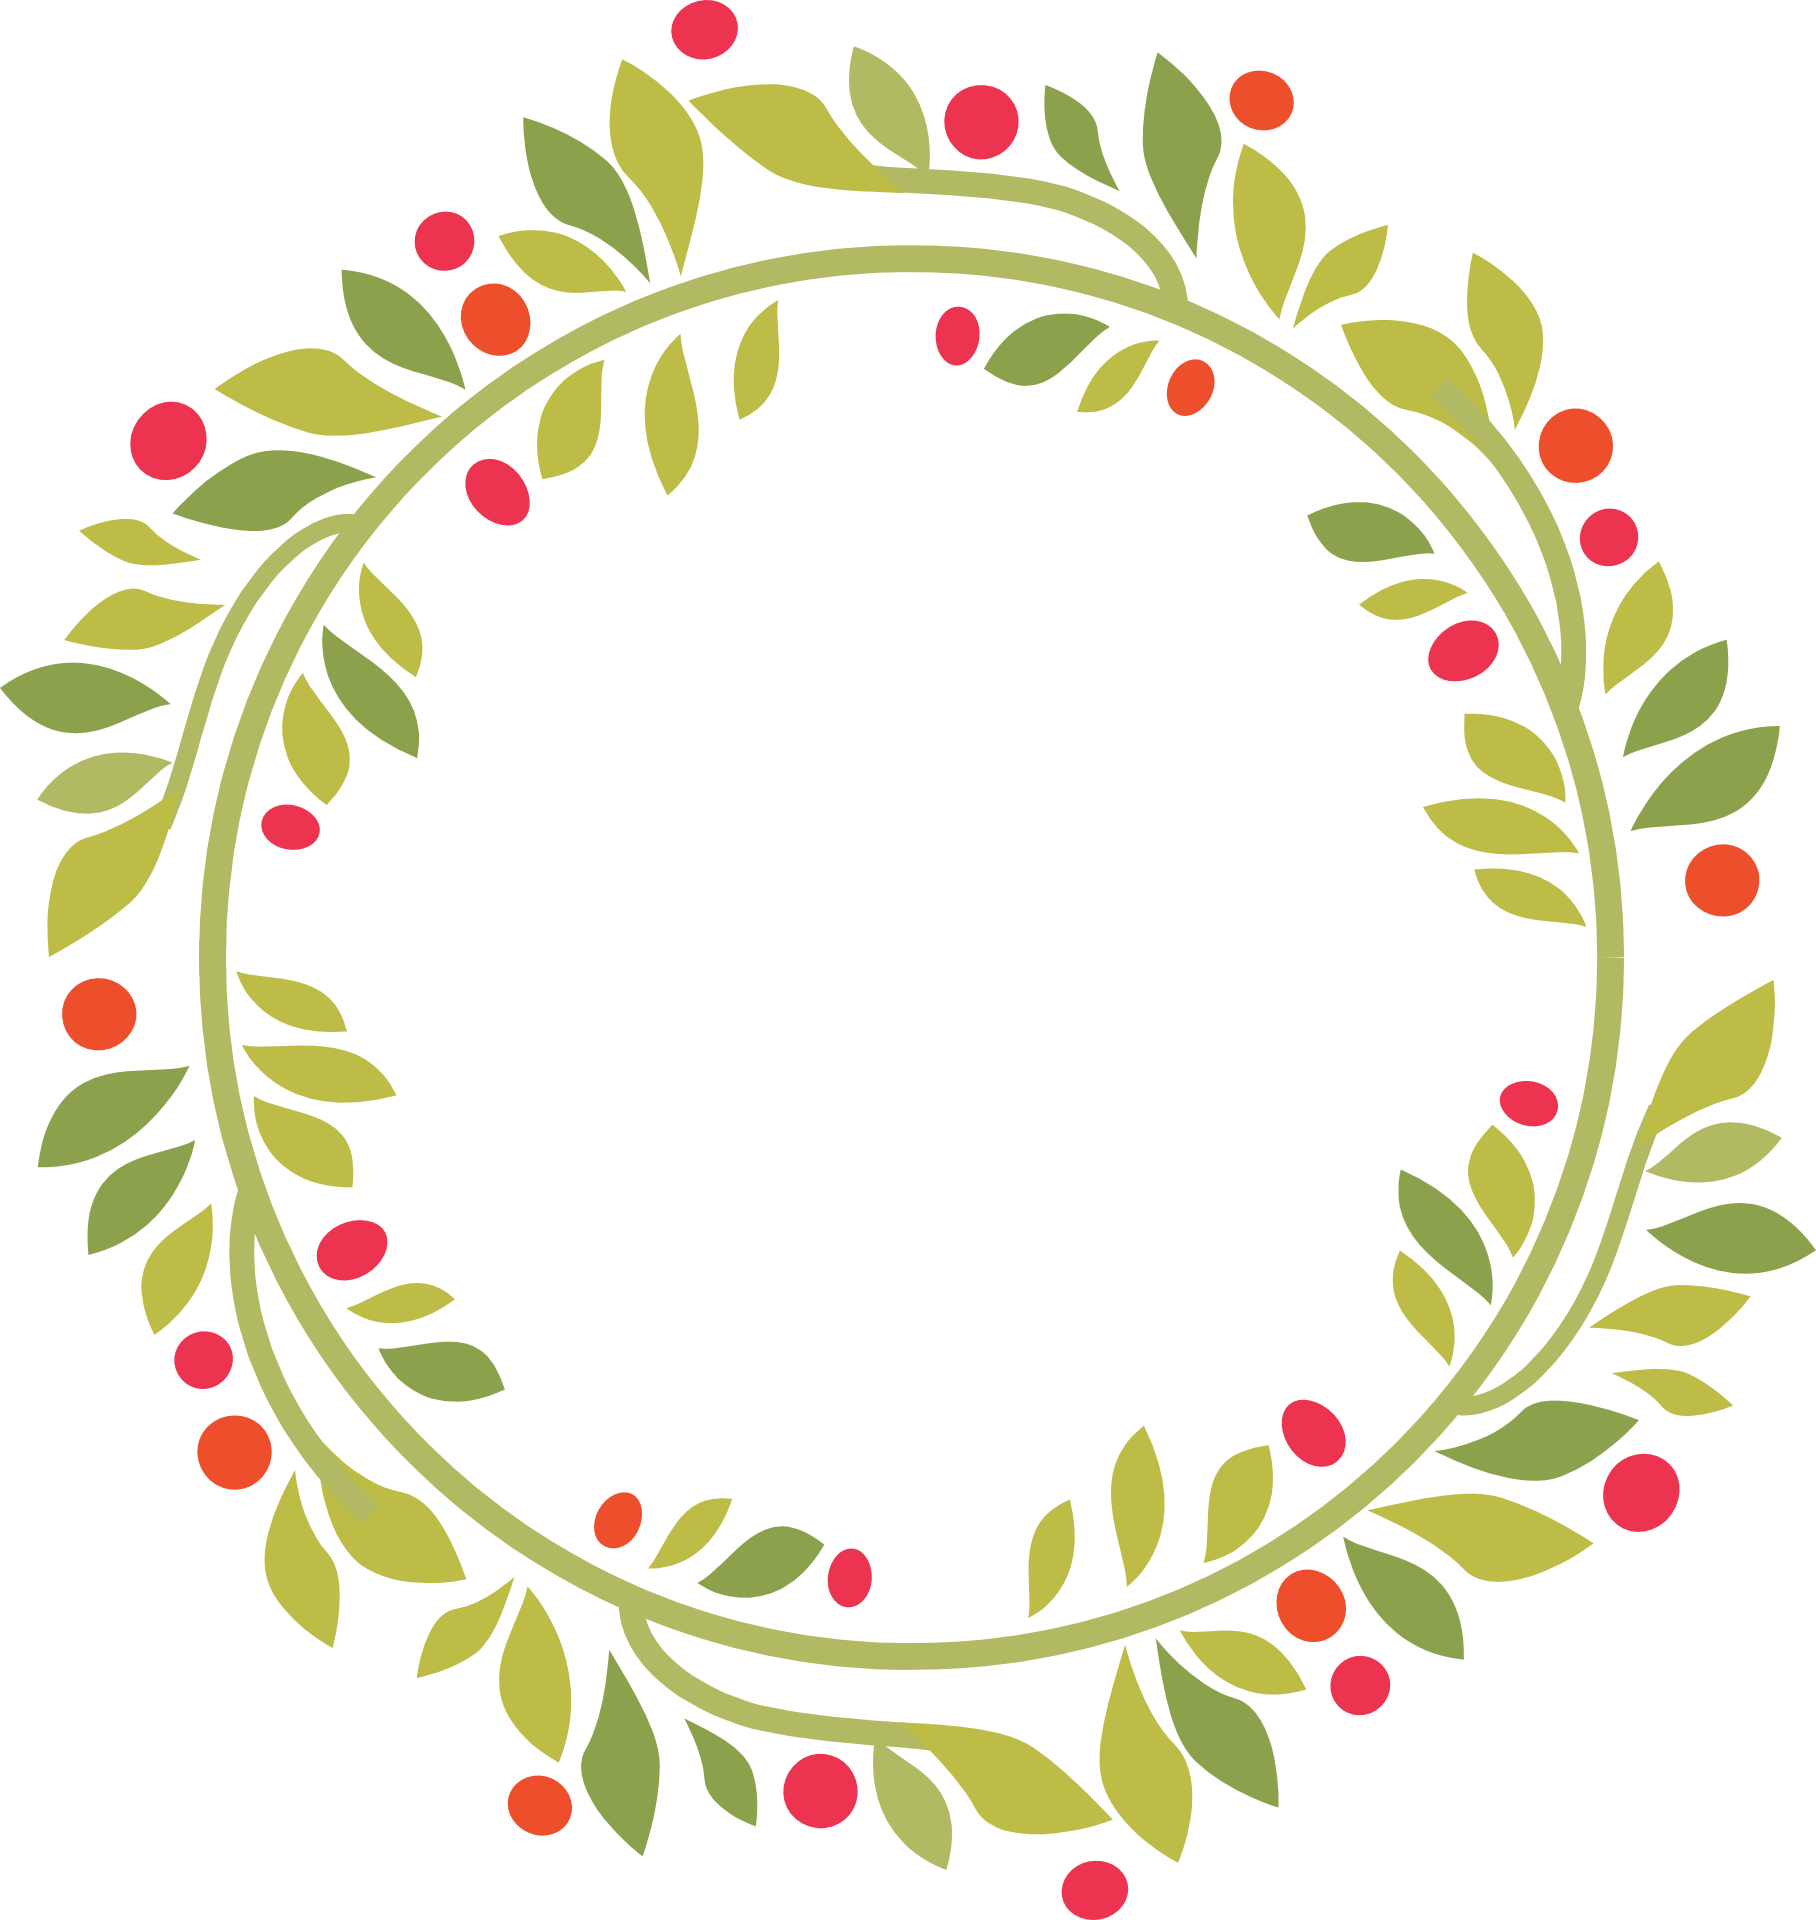 Wreath on Christmas clipart free image.